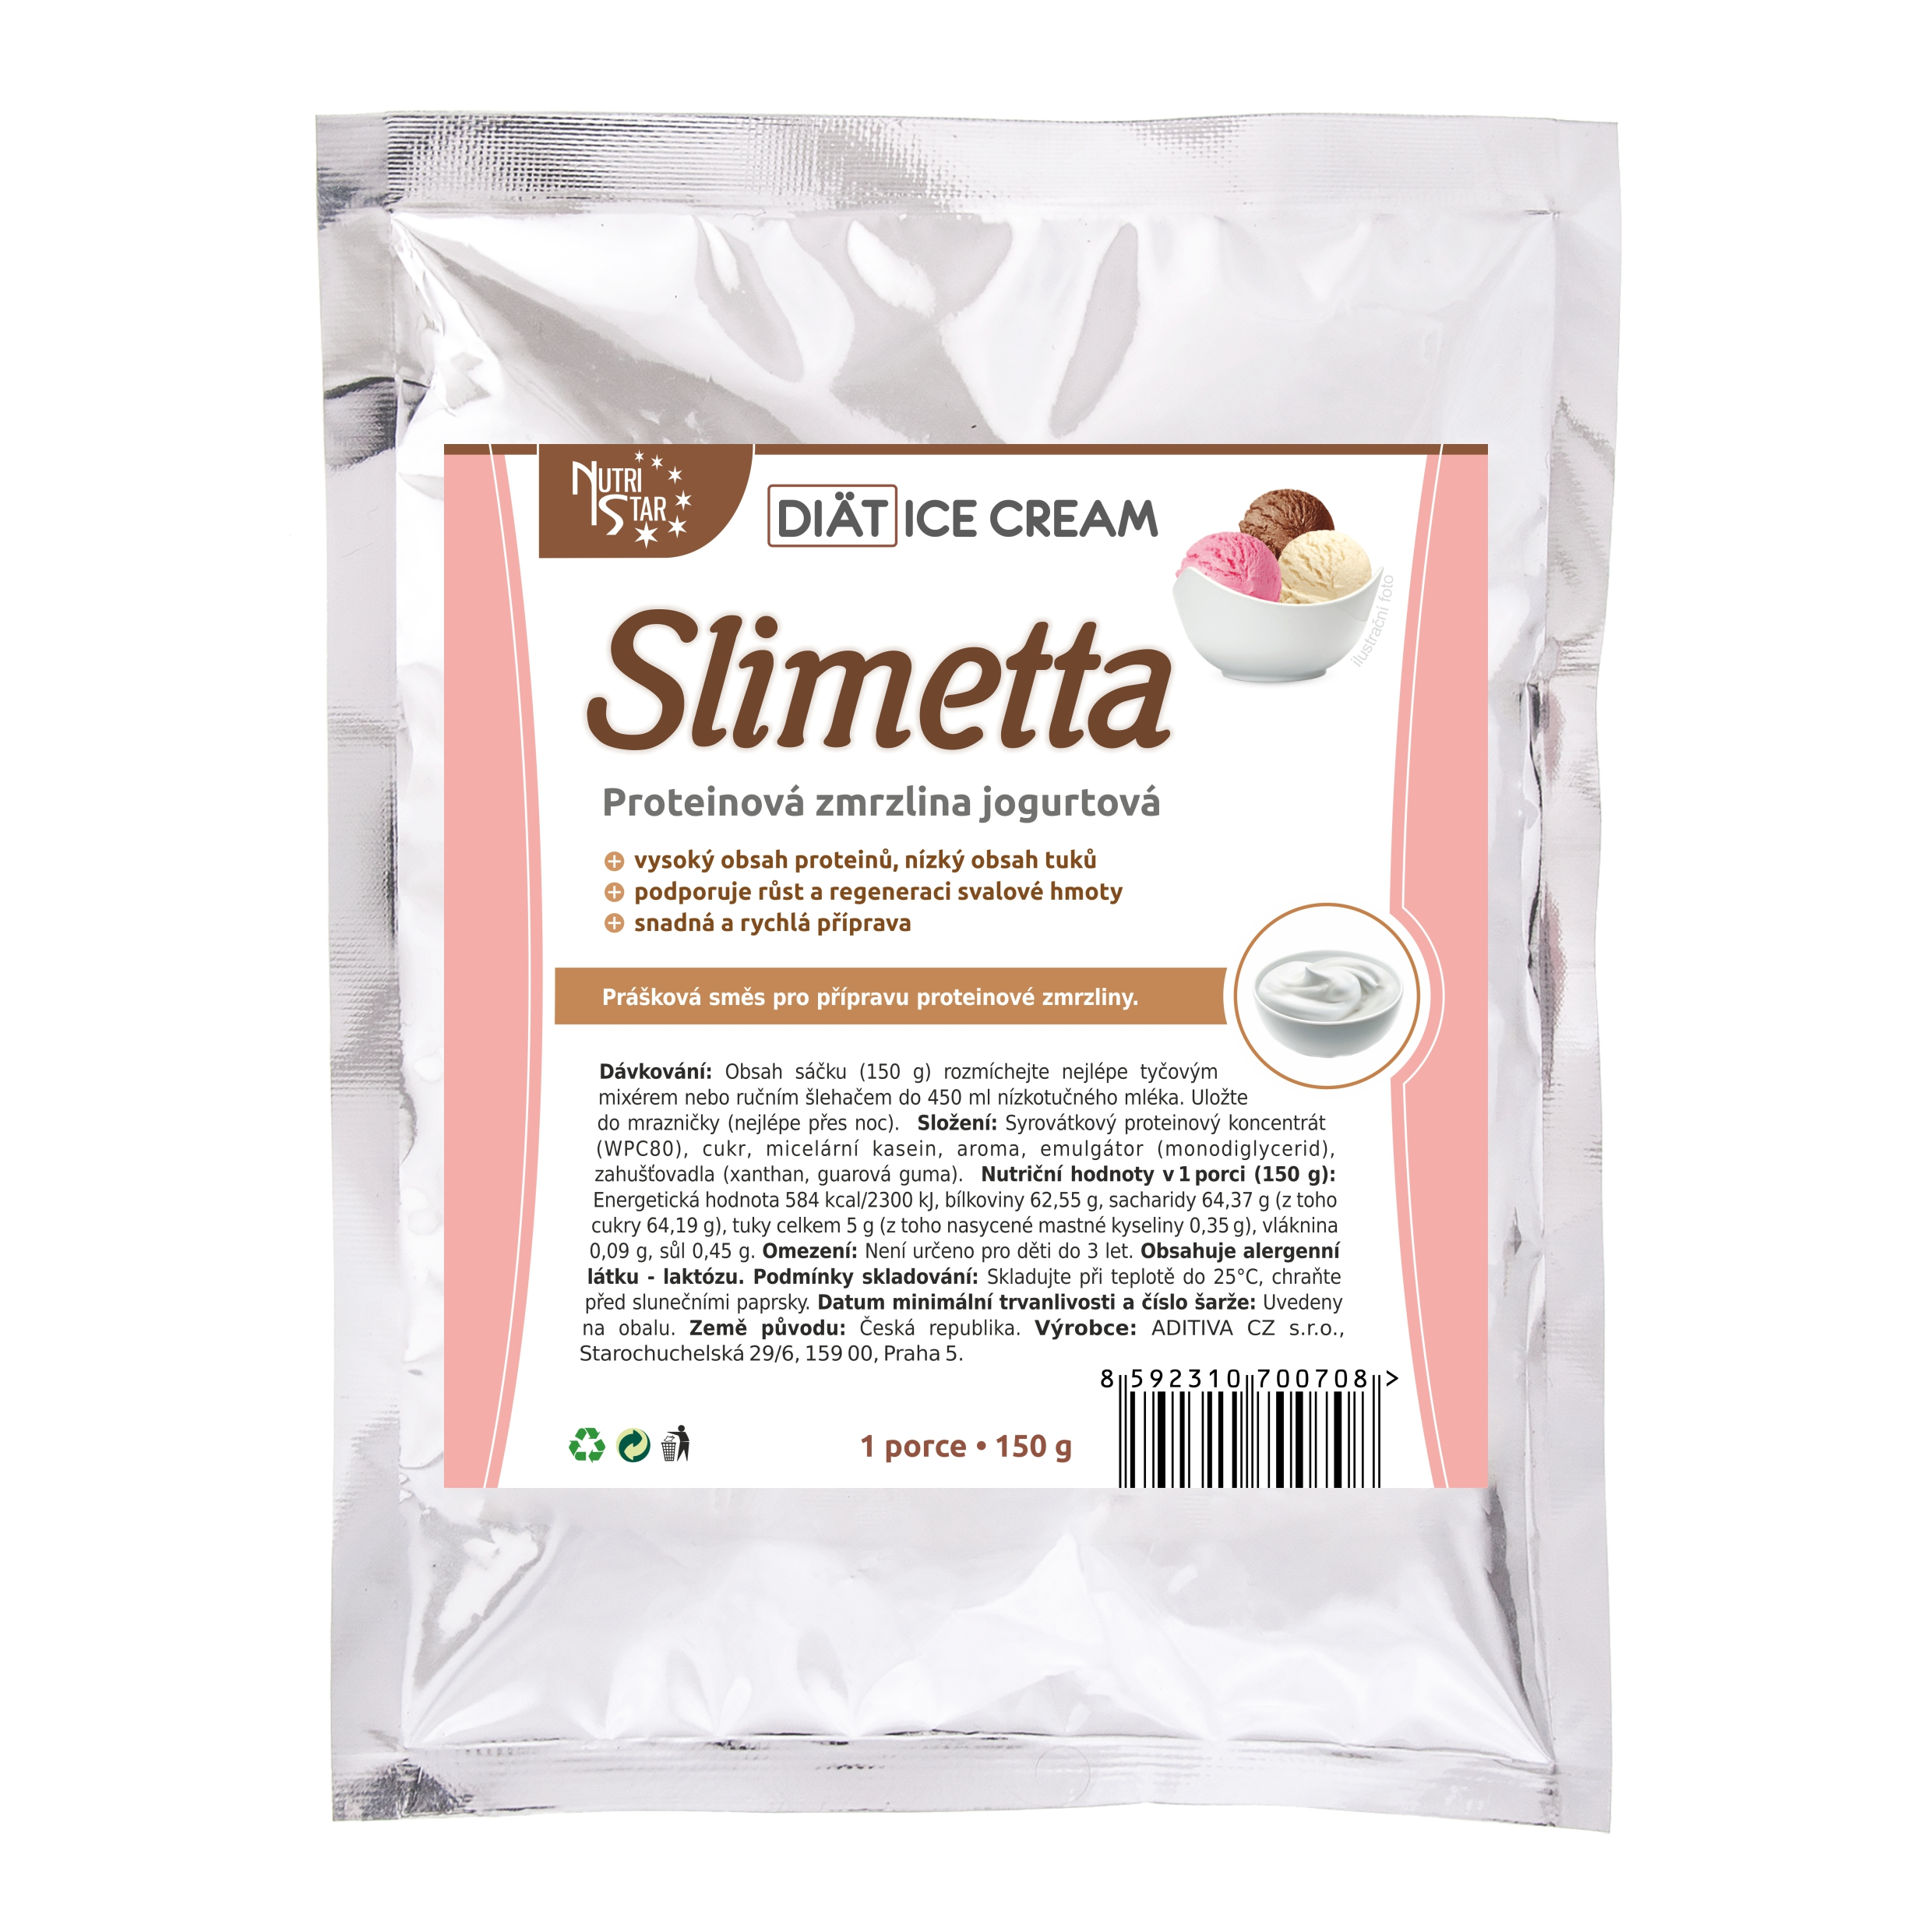 Diät Ice Cream Slimetta 150 g - 1 porce